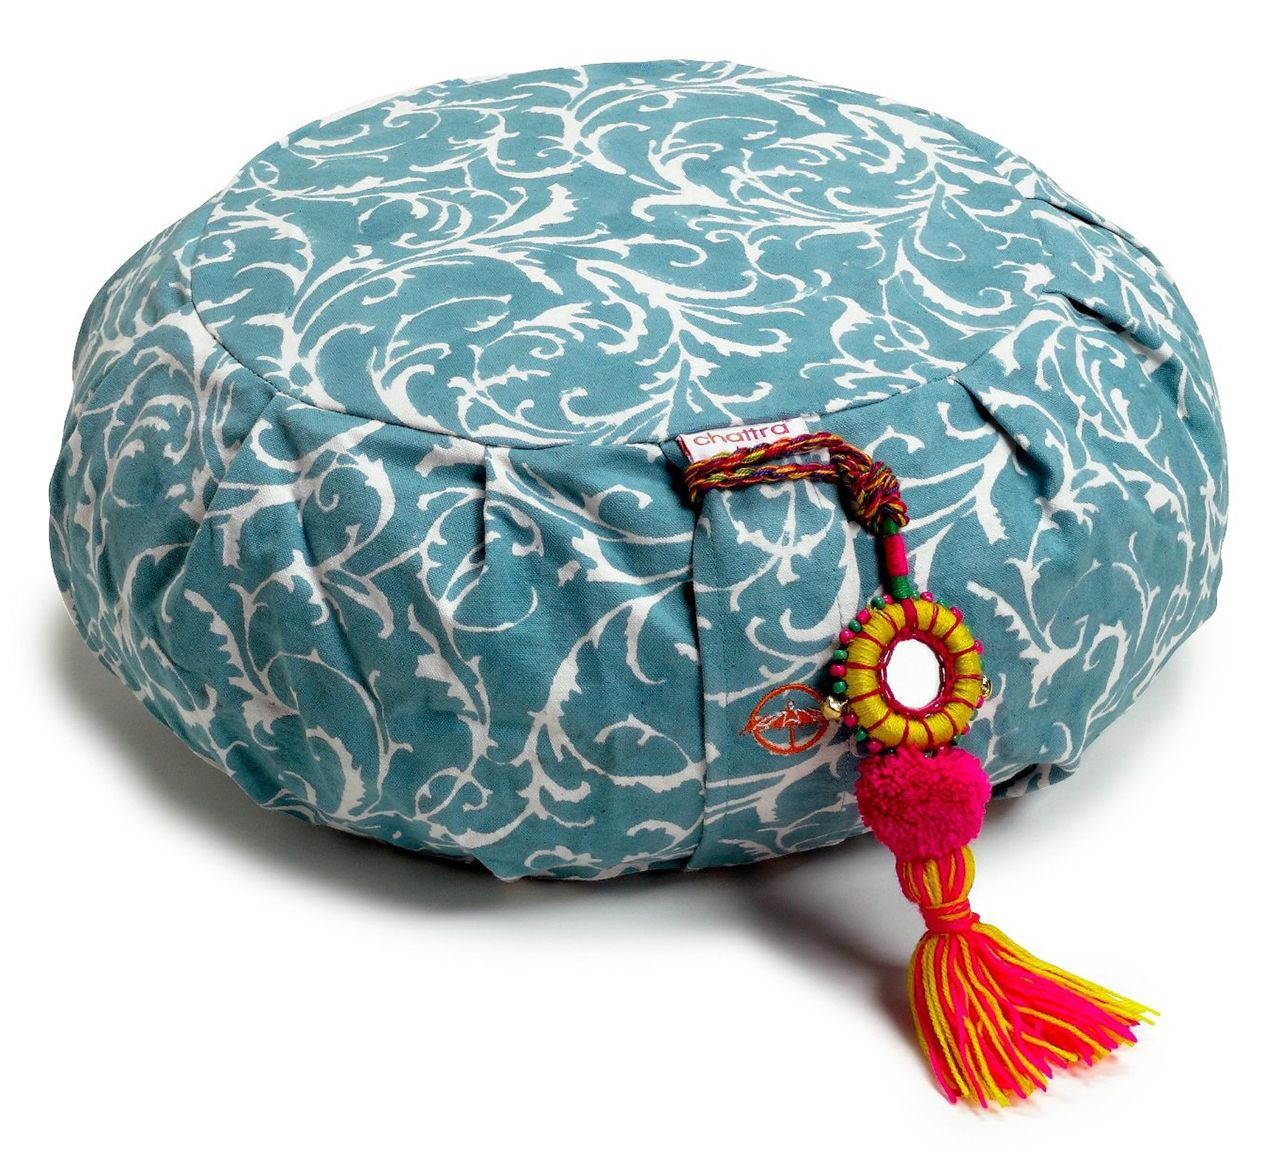 affordable meditation cushions to buy right now pinterest